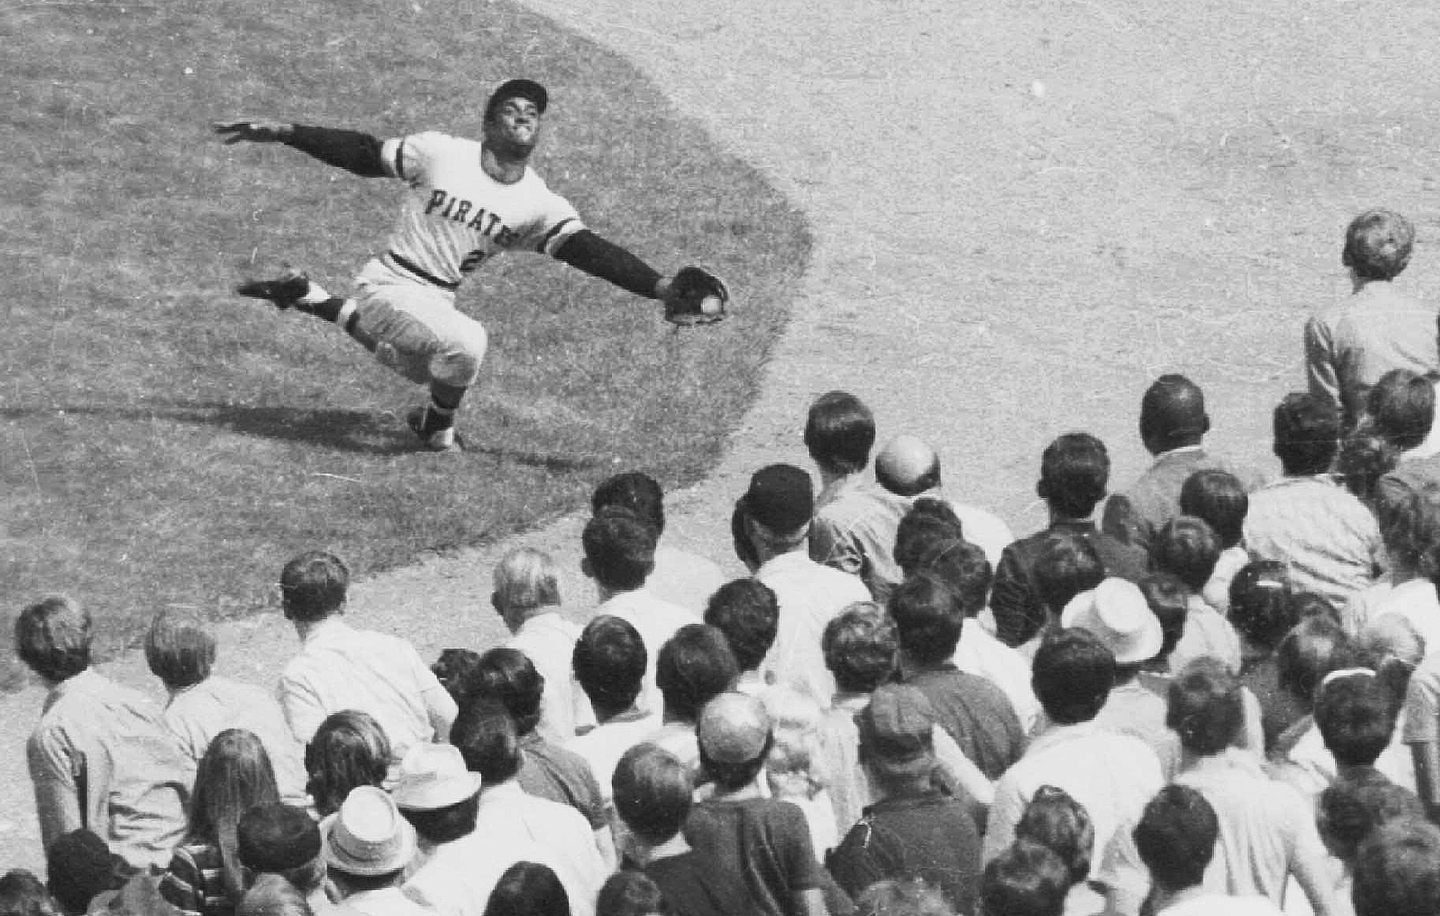 Pittsburgh Pirate Roberto Clemente robs New York Mets' Cleon Jones of a hit at New York's Shea Stadium, Sept. 21, 1970. The Mets won the game, 4-1.